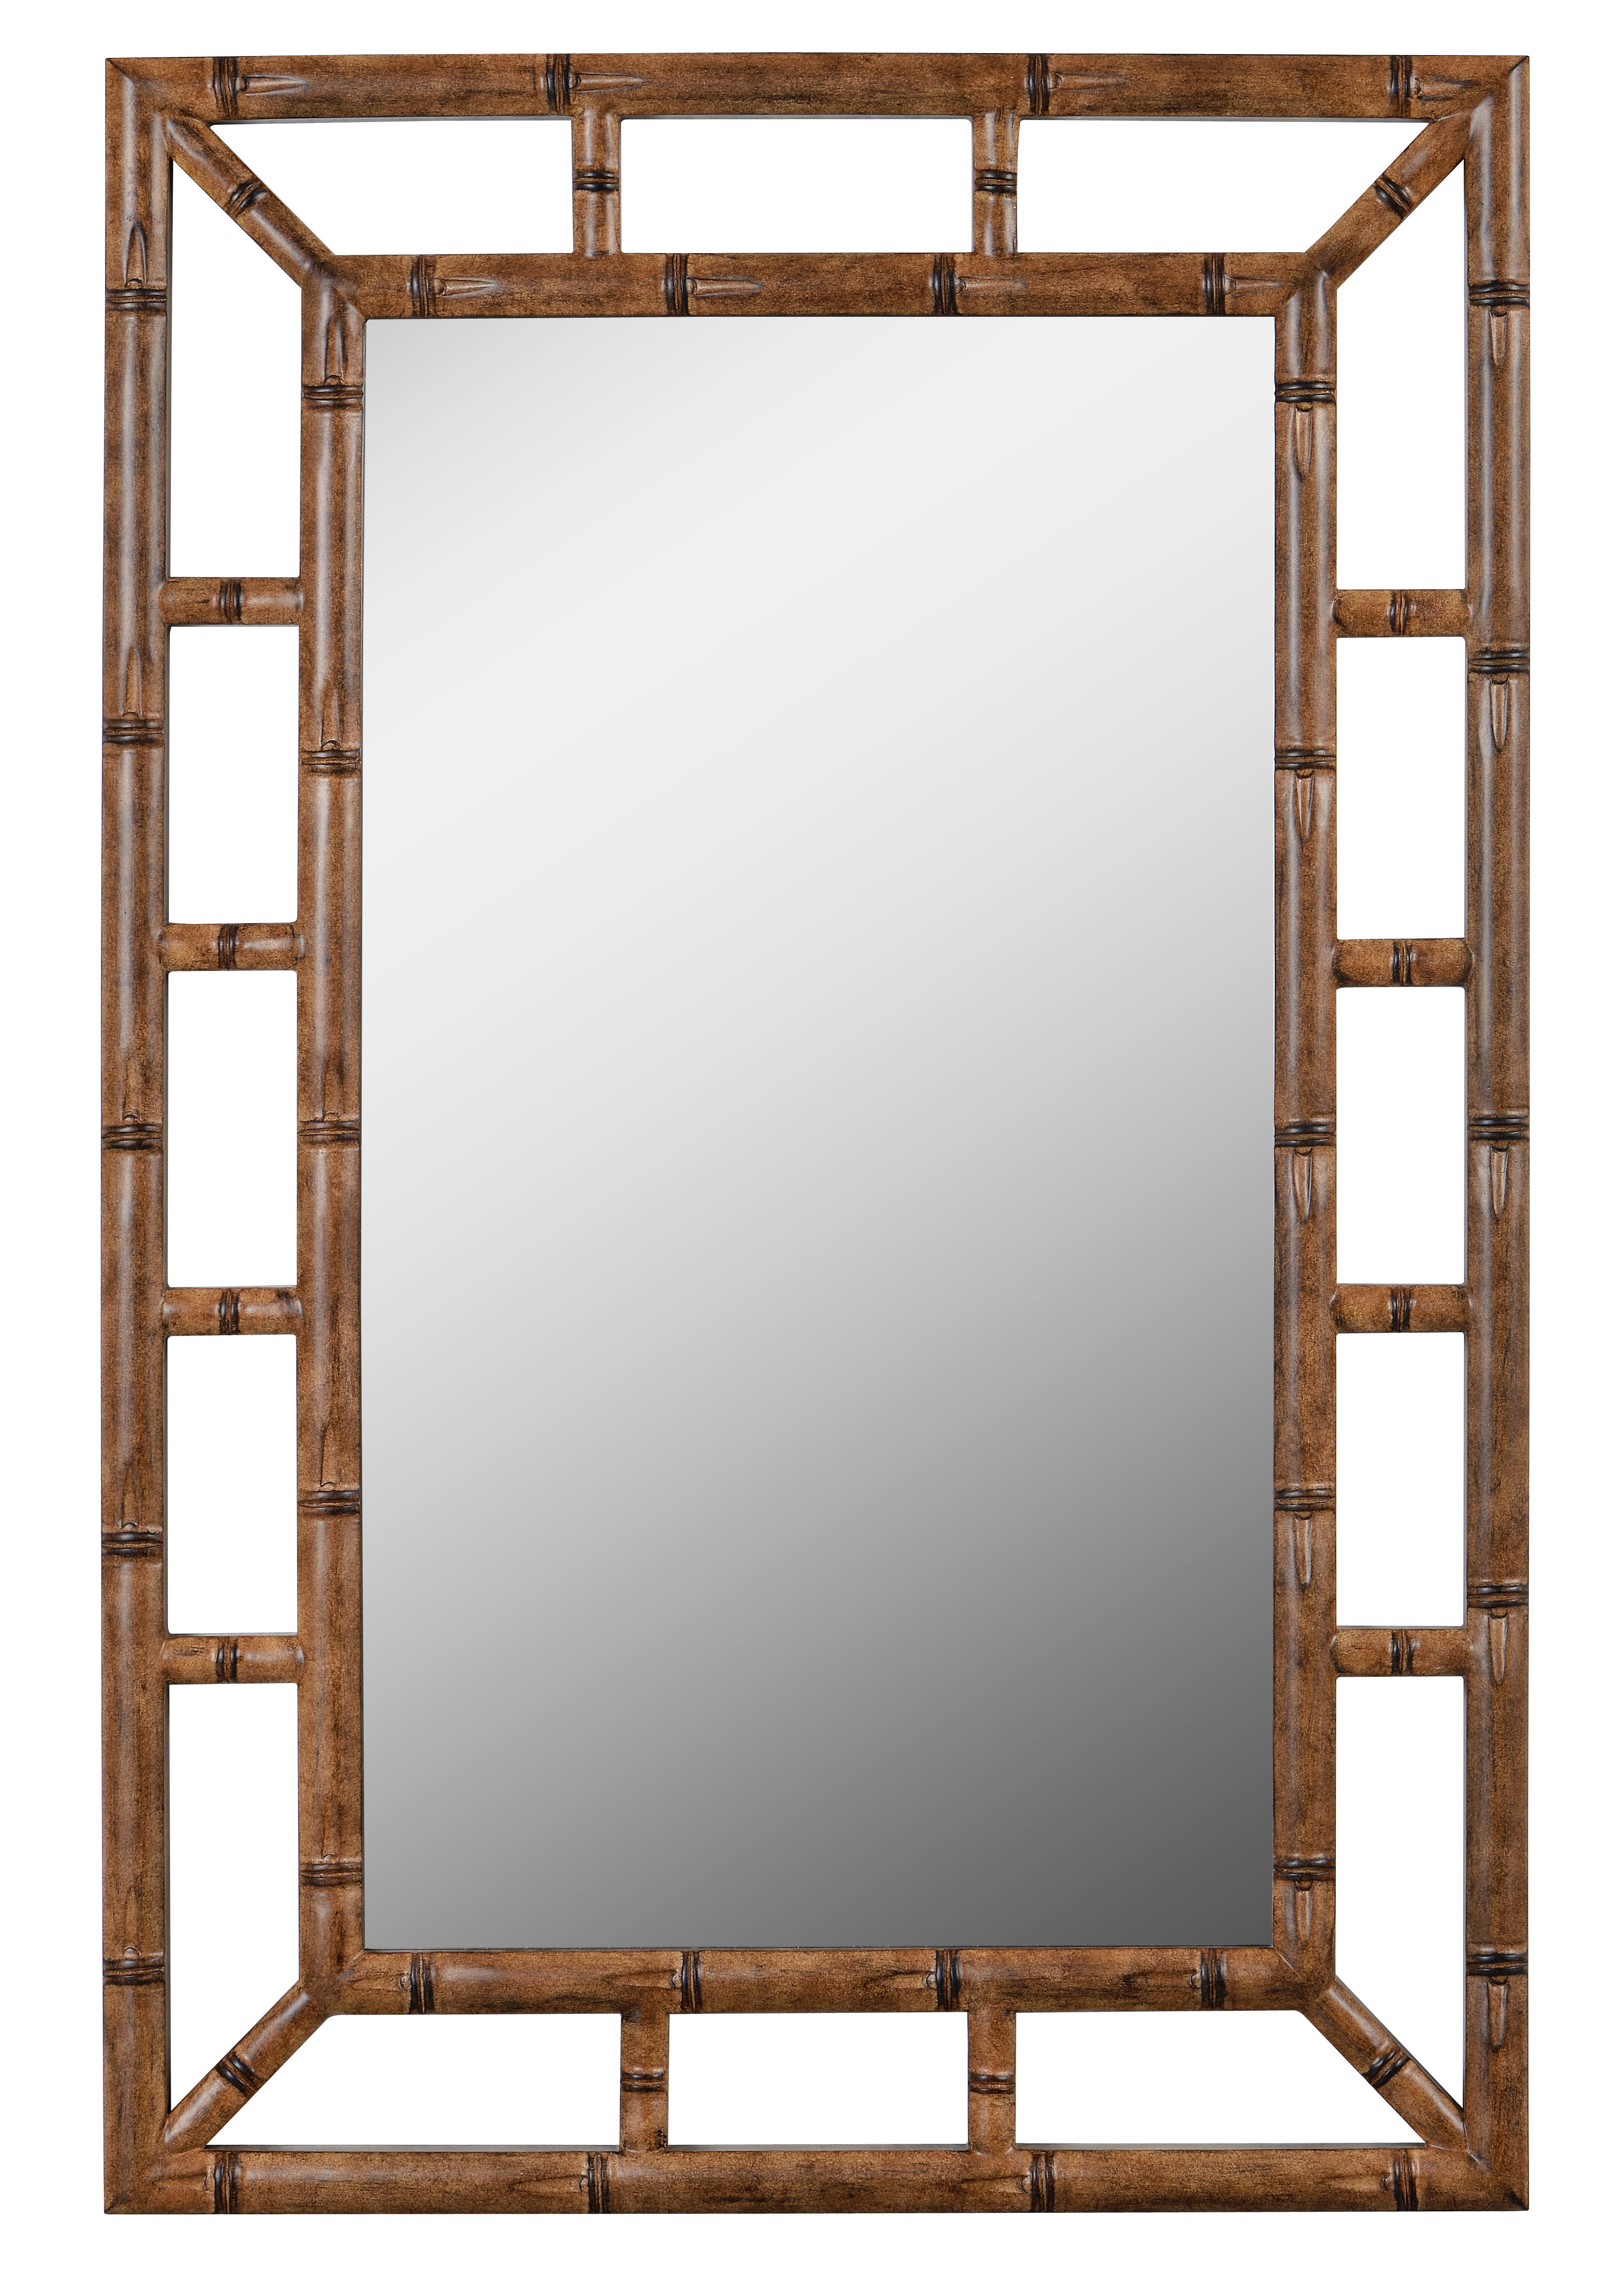 Cleta Bamboo Brown Traditional Beveled Wall Mirror In 2 Piece Priscilla Square Traditional Beveled Distressed Accent Mirror Sets (Image 9 of 20)